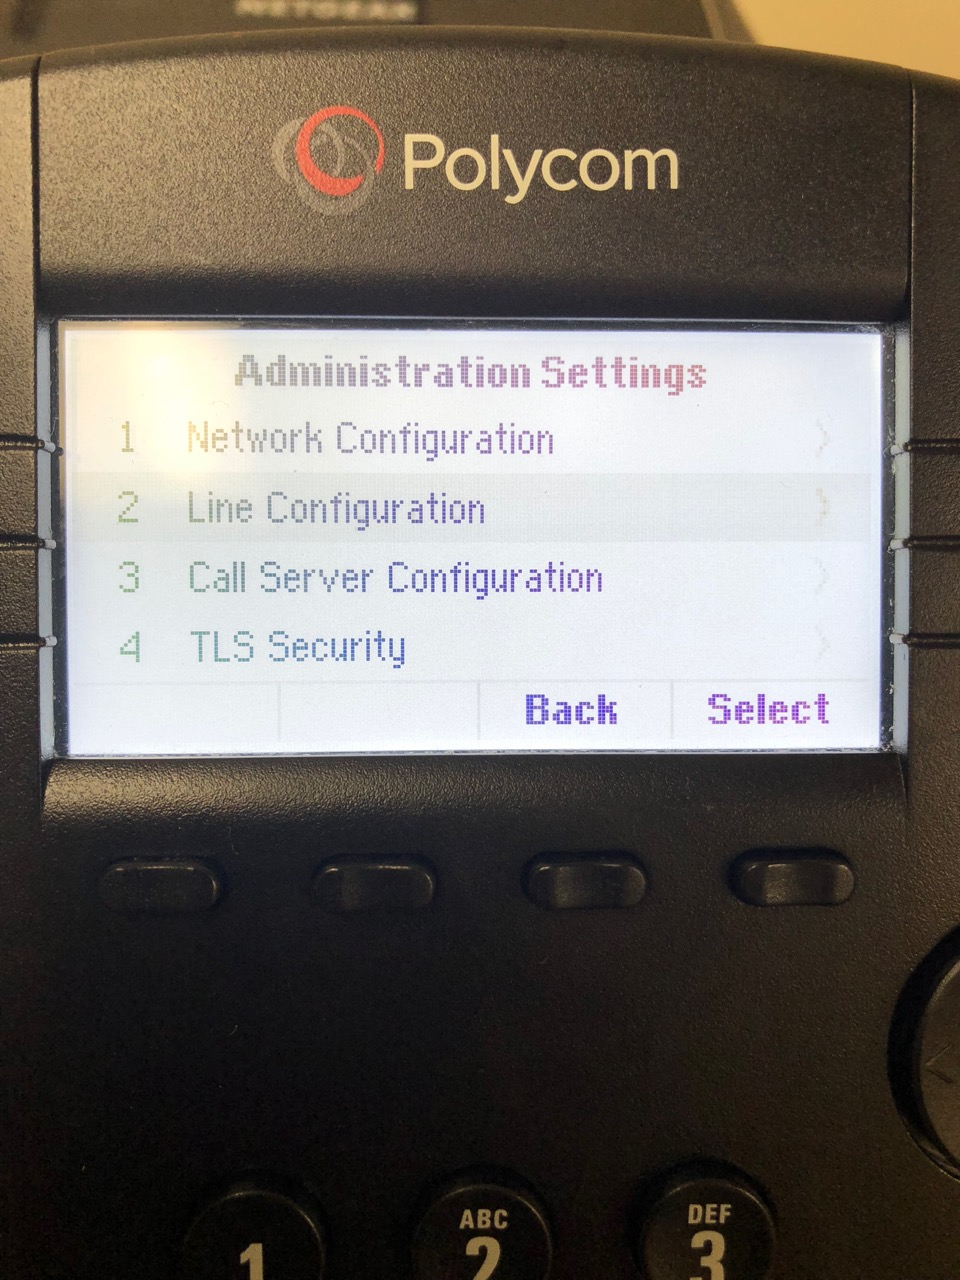 How to Set Up A Polycom Phone with Keypad - Smith ai Support